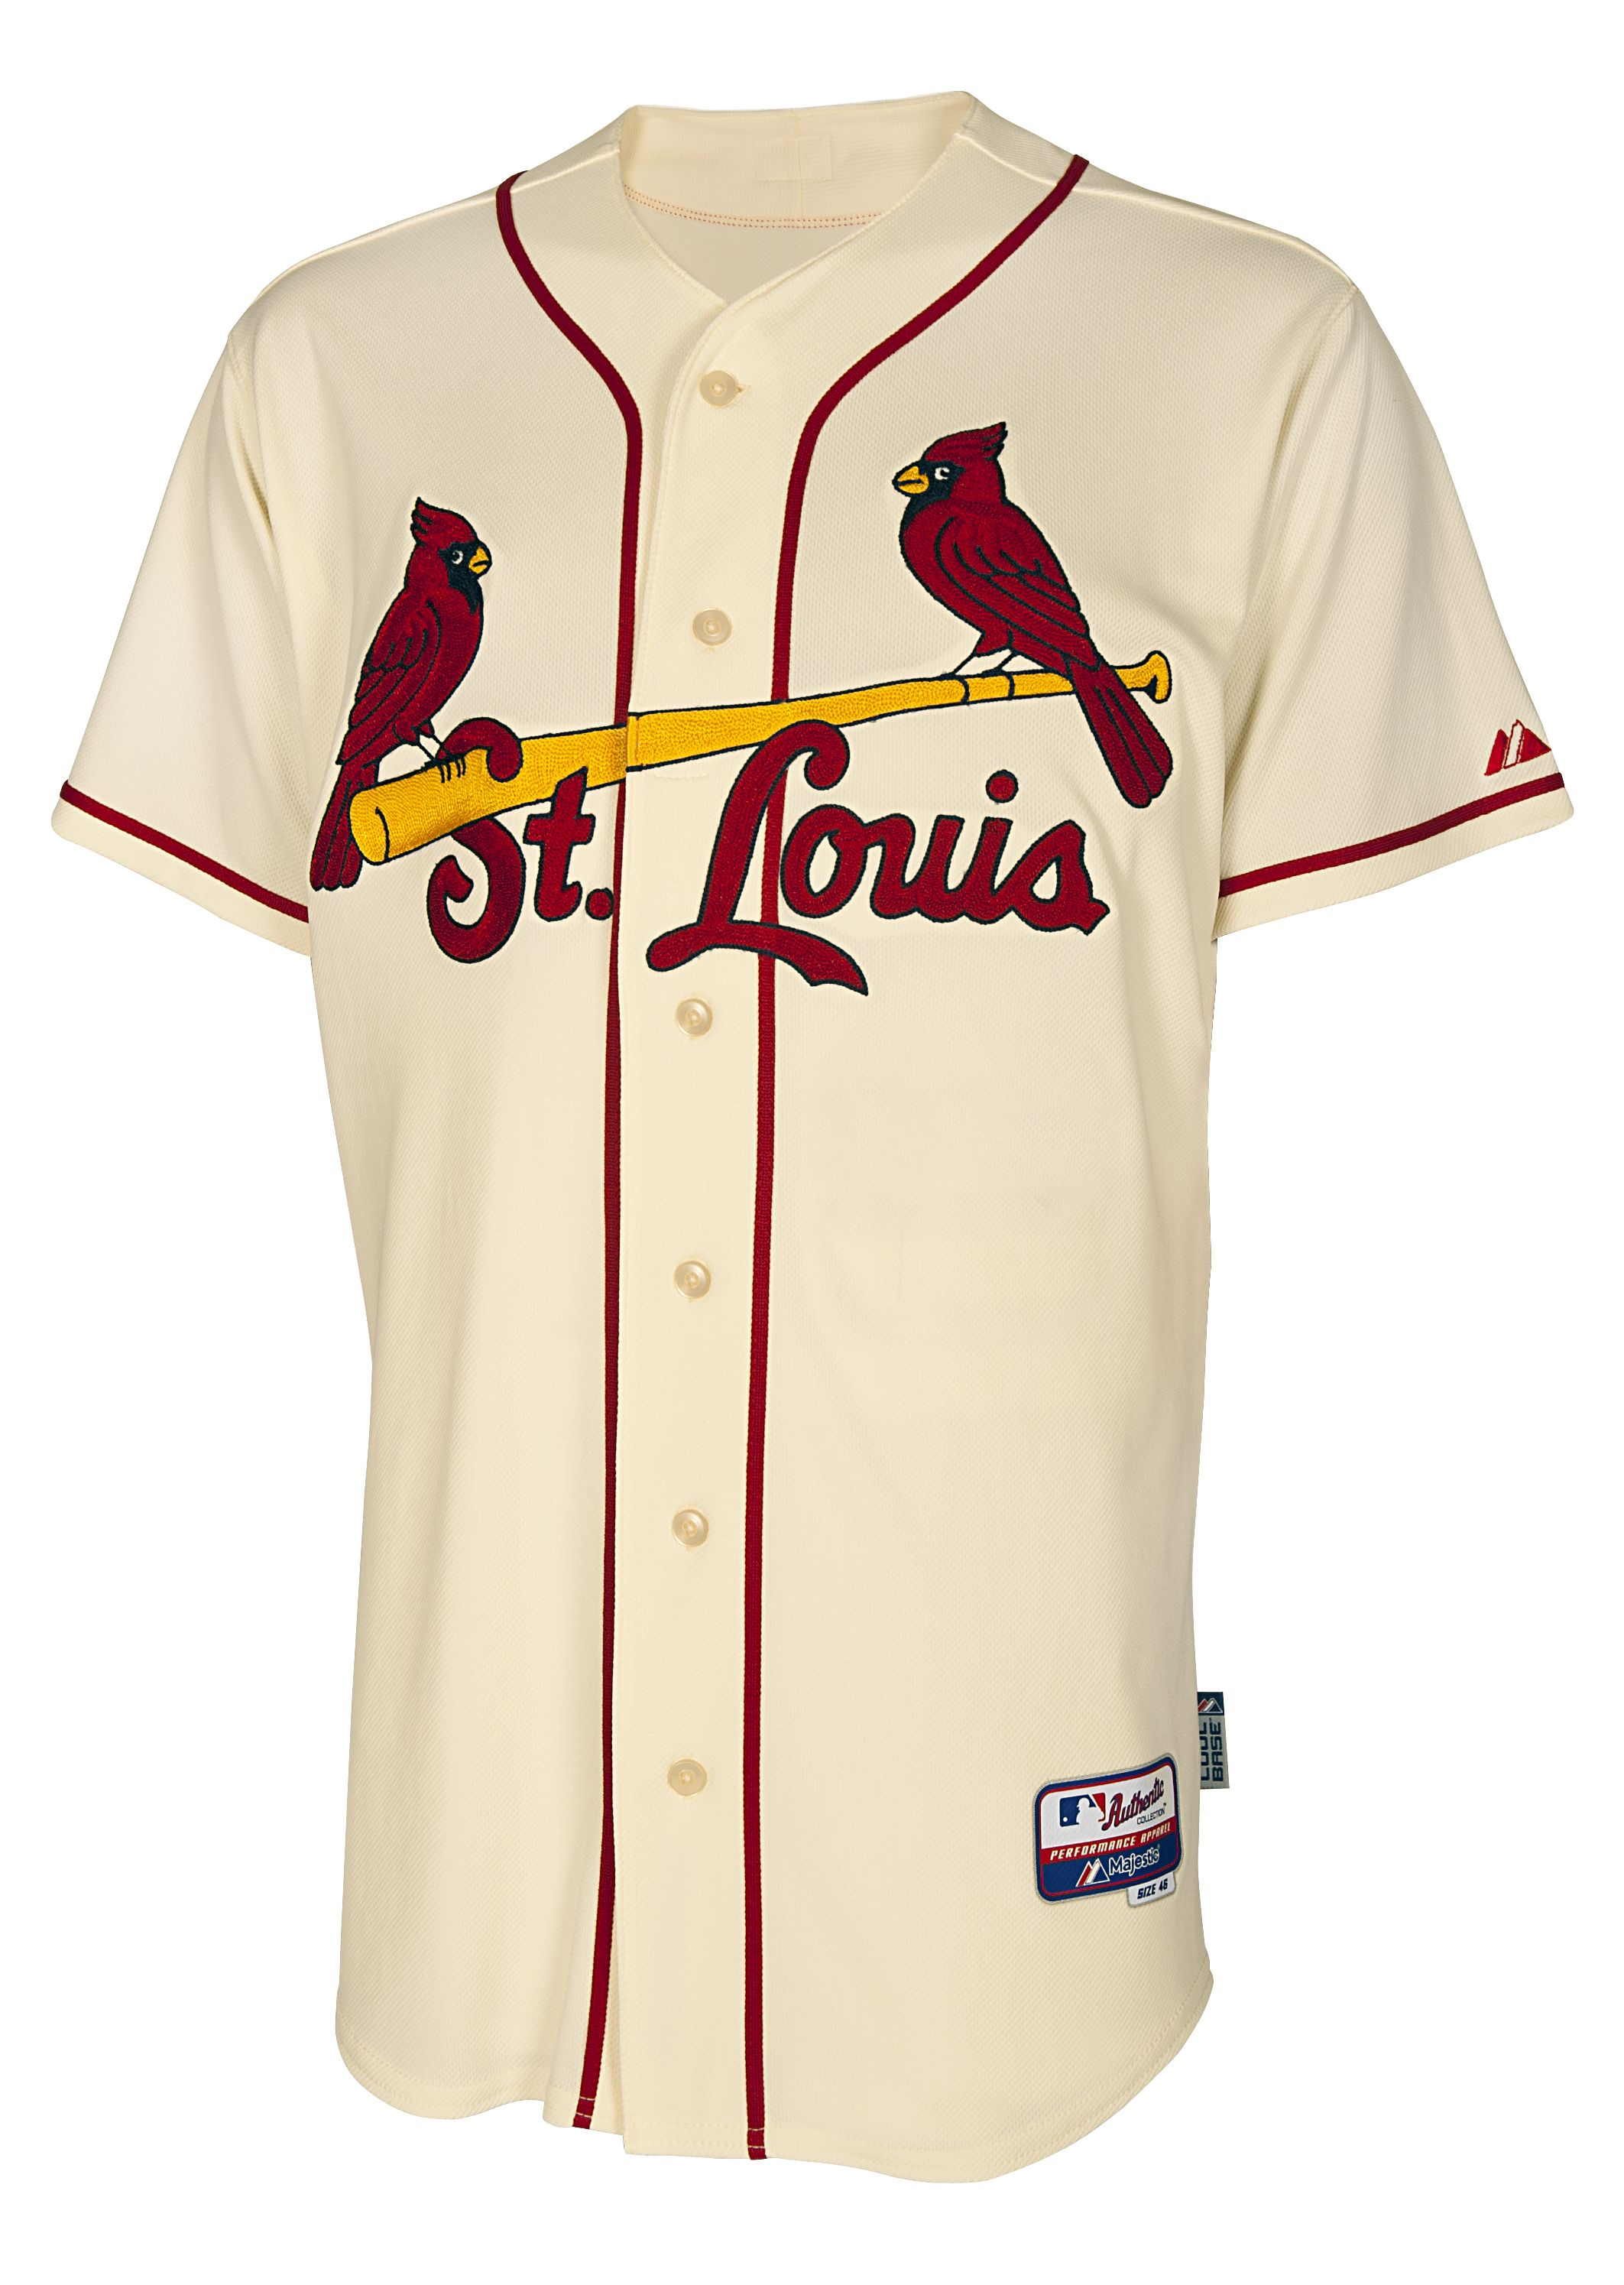 86335ebb3 St. Louis Cardinals reveal a new jersey on Friday